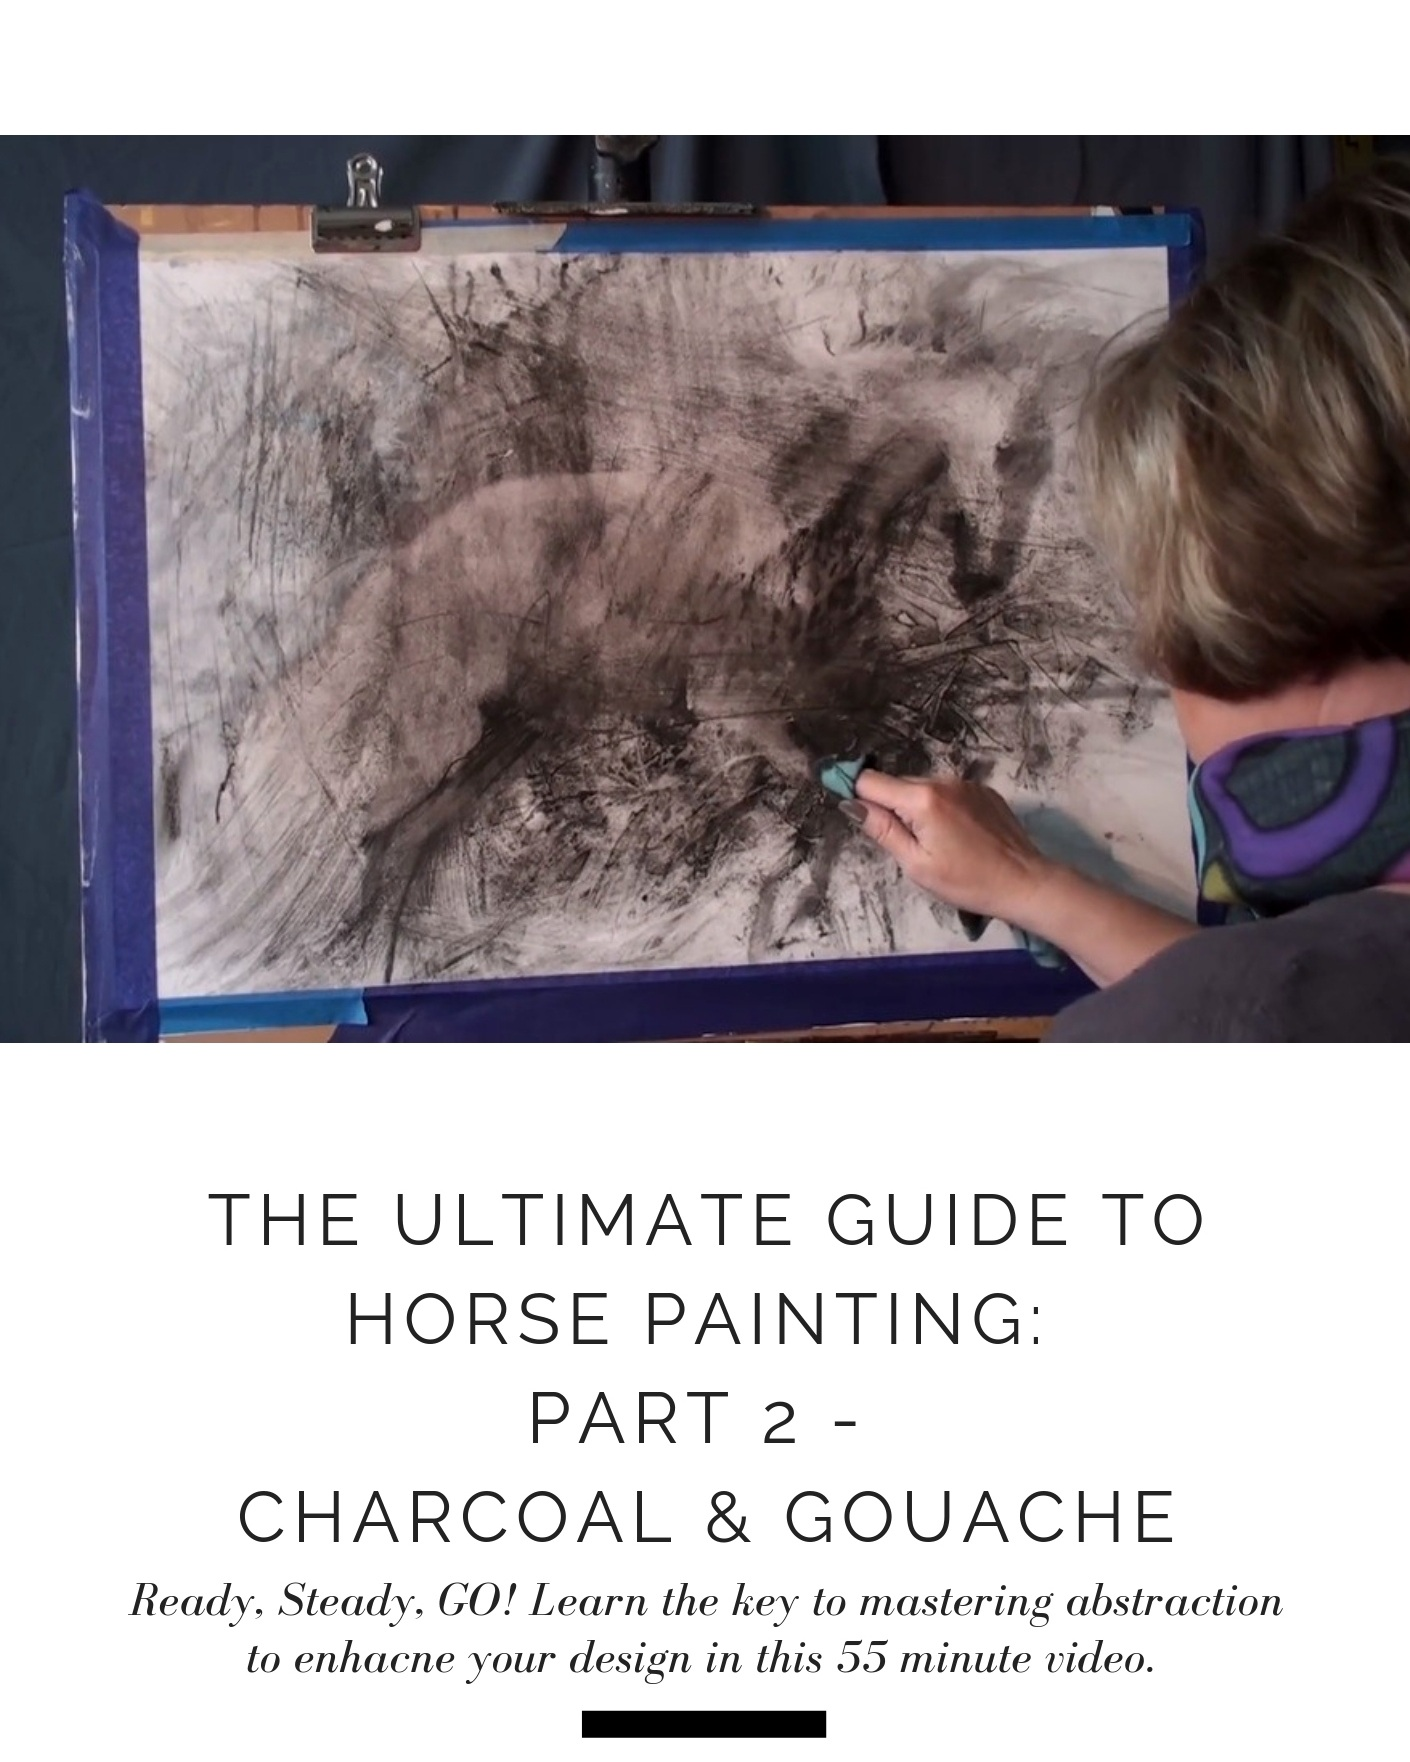 THE+ULTIMATE+GUIDE+TO+HORSE+PAINTING+%285%29.jpg